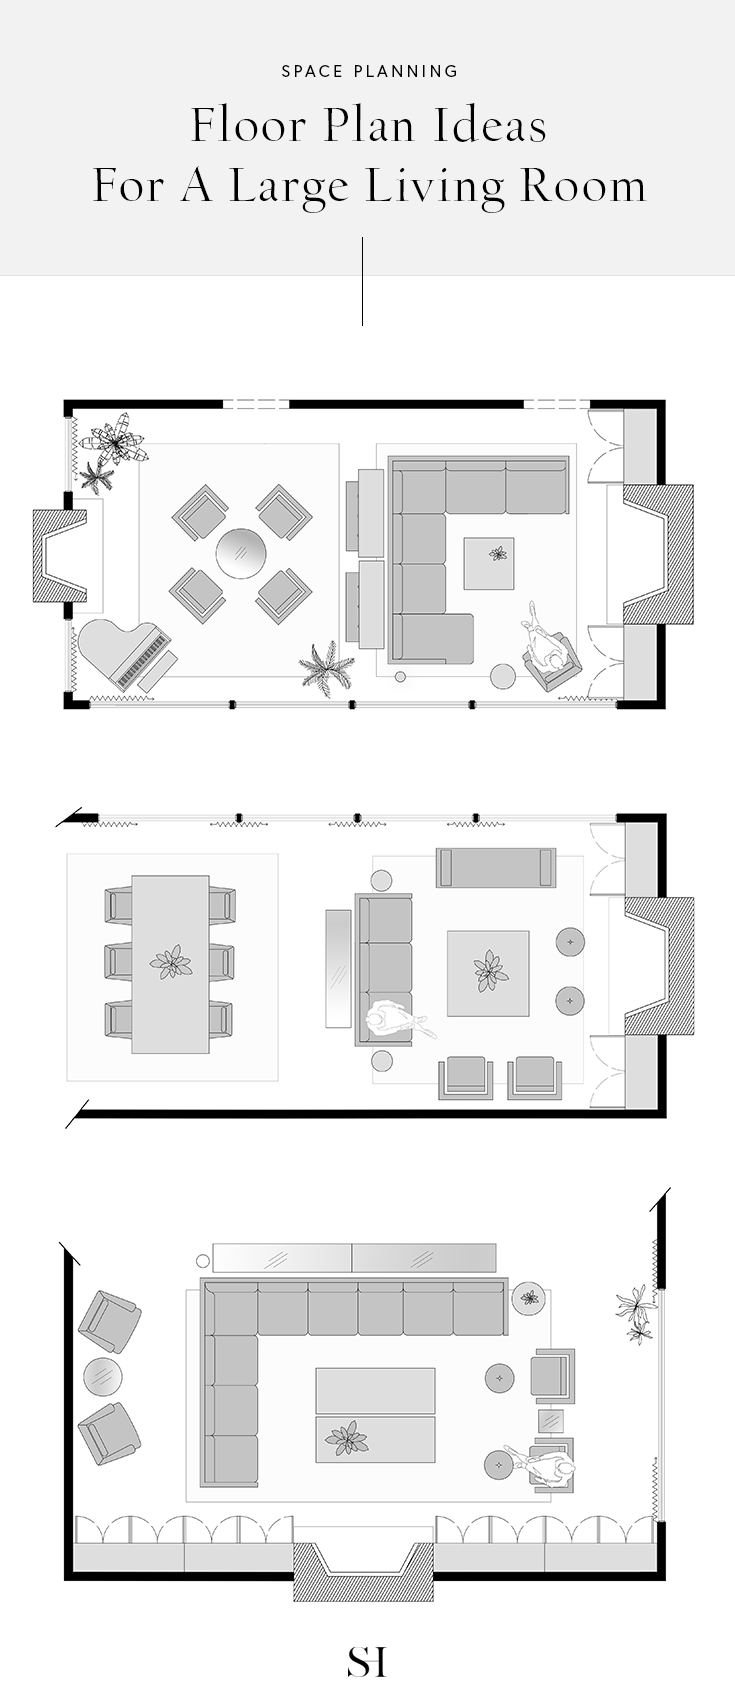 5 Furniture Layout Ideas For A Large Living Room With Floor